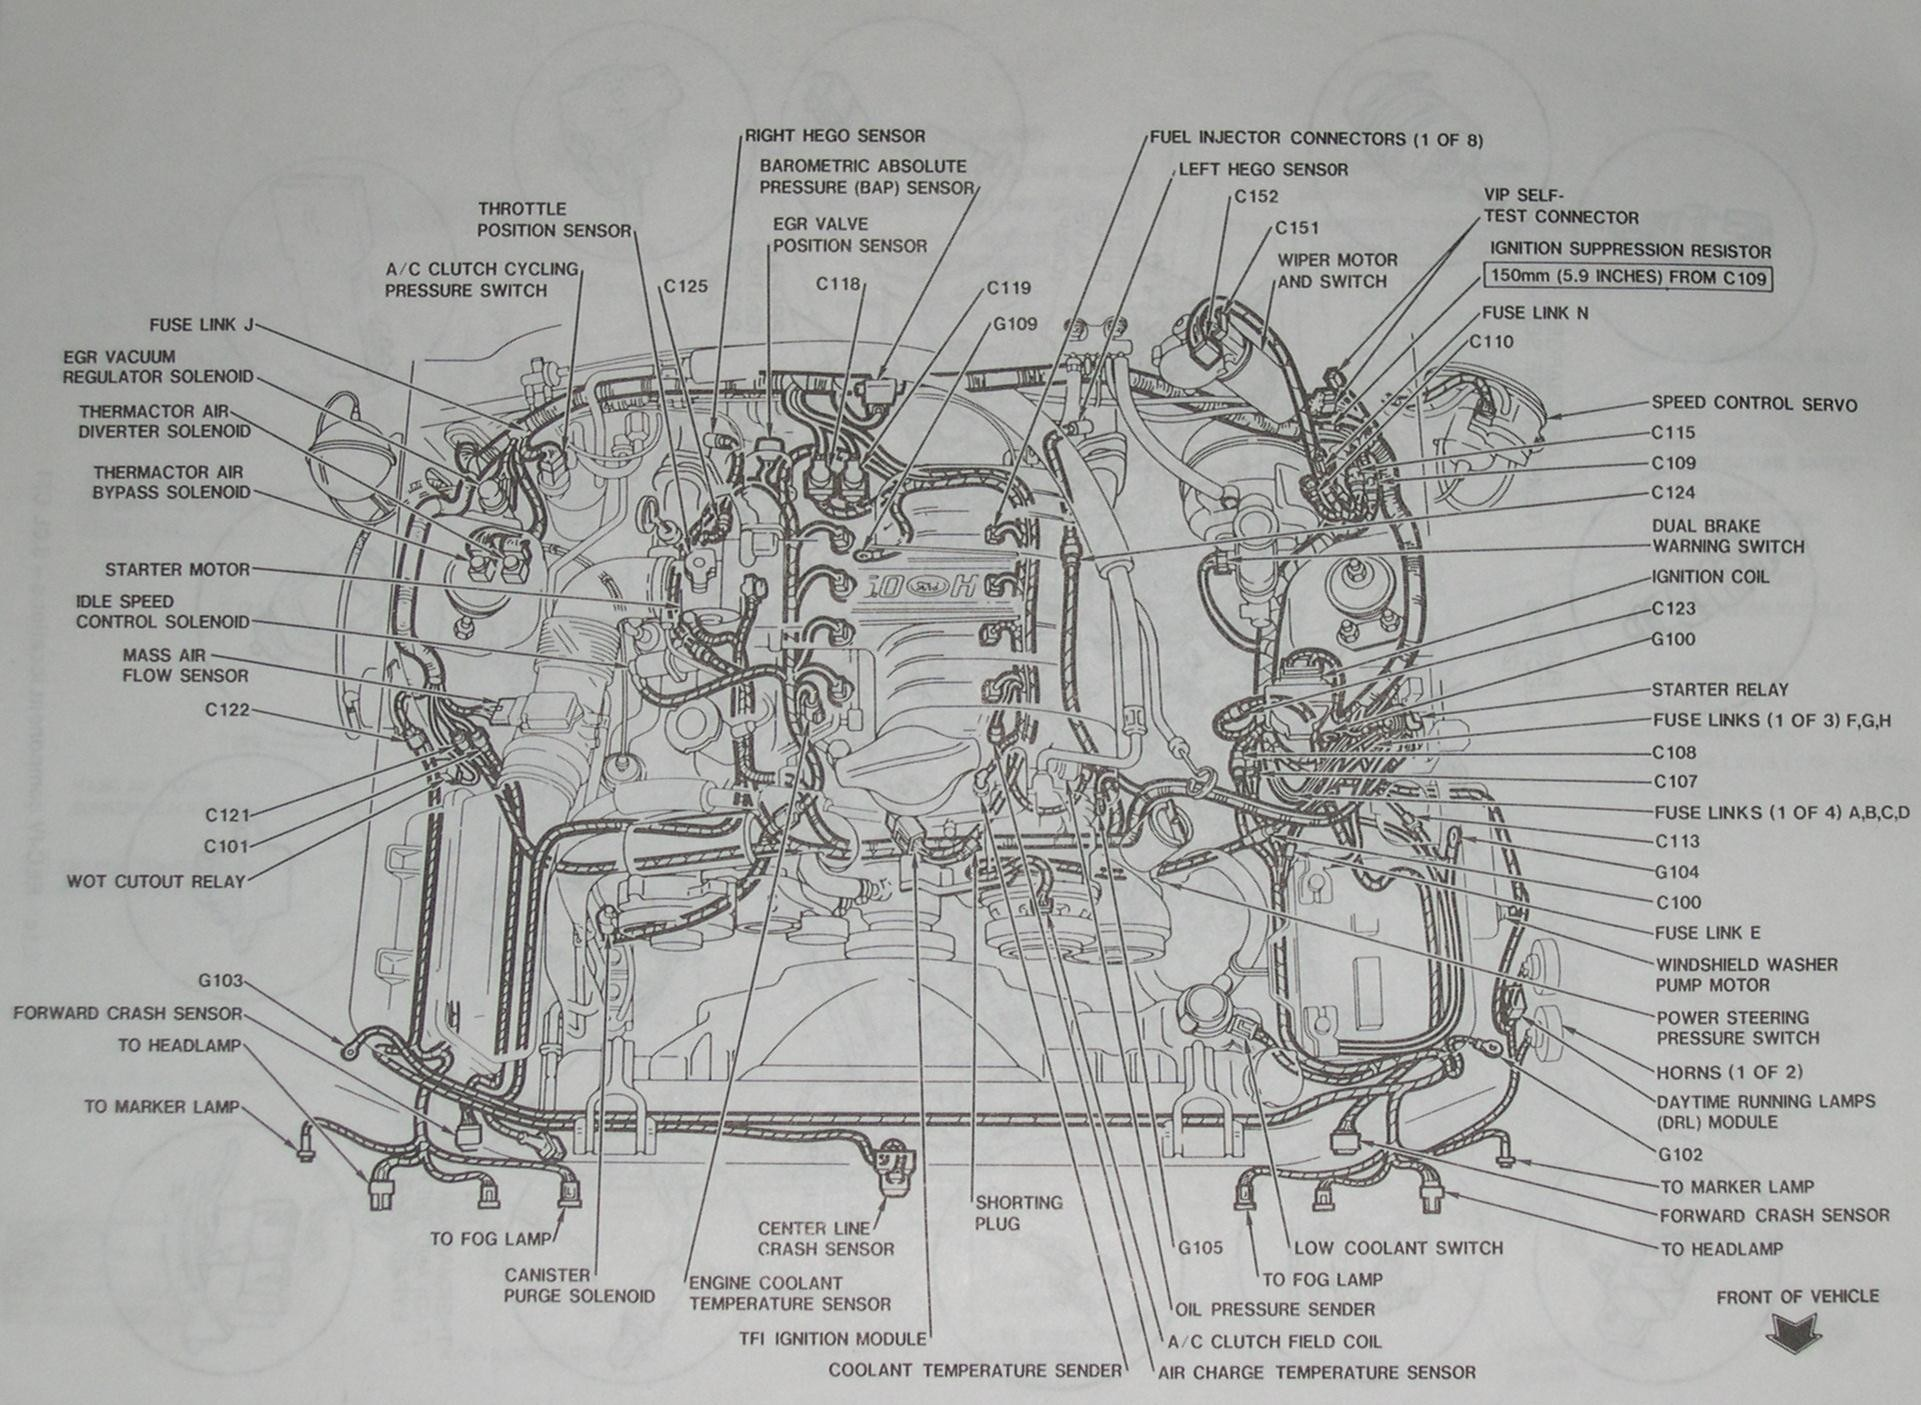 2000 Mustang Engine Diagram 2007 ford Mustang Wiring Diagram Wiring Diagram Of 2000 Mustang Engine Diagram